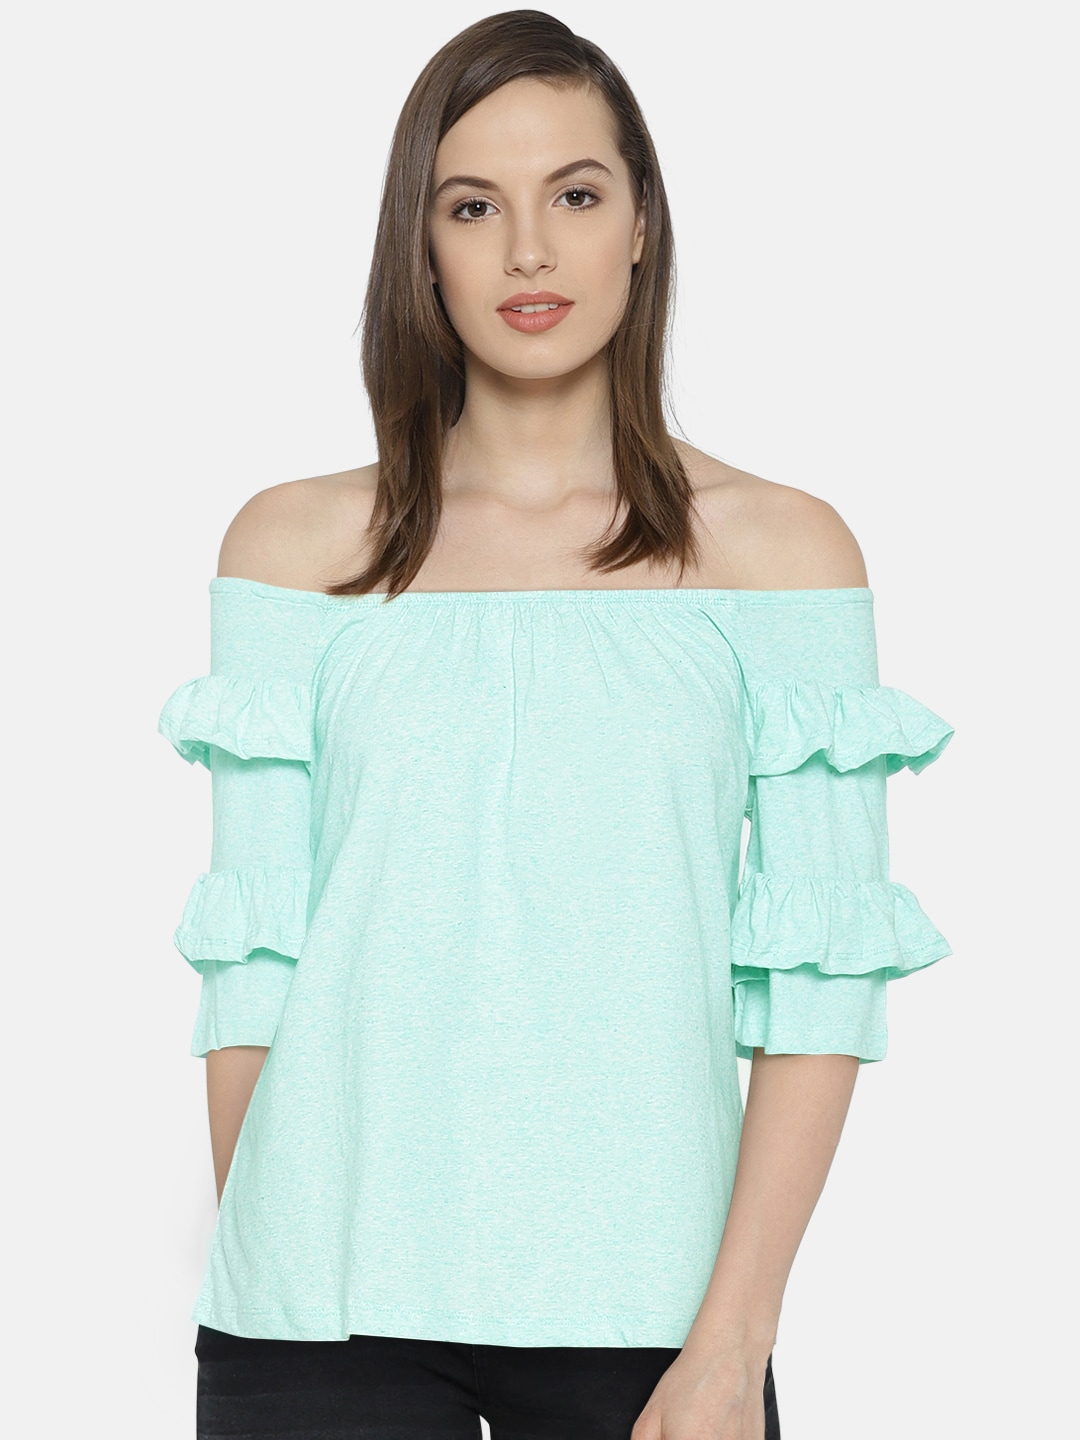 a13192701b248 Ladies Tops - Buy Tops   T-shirts for Women Online